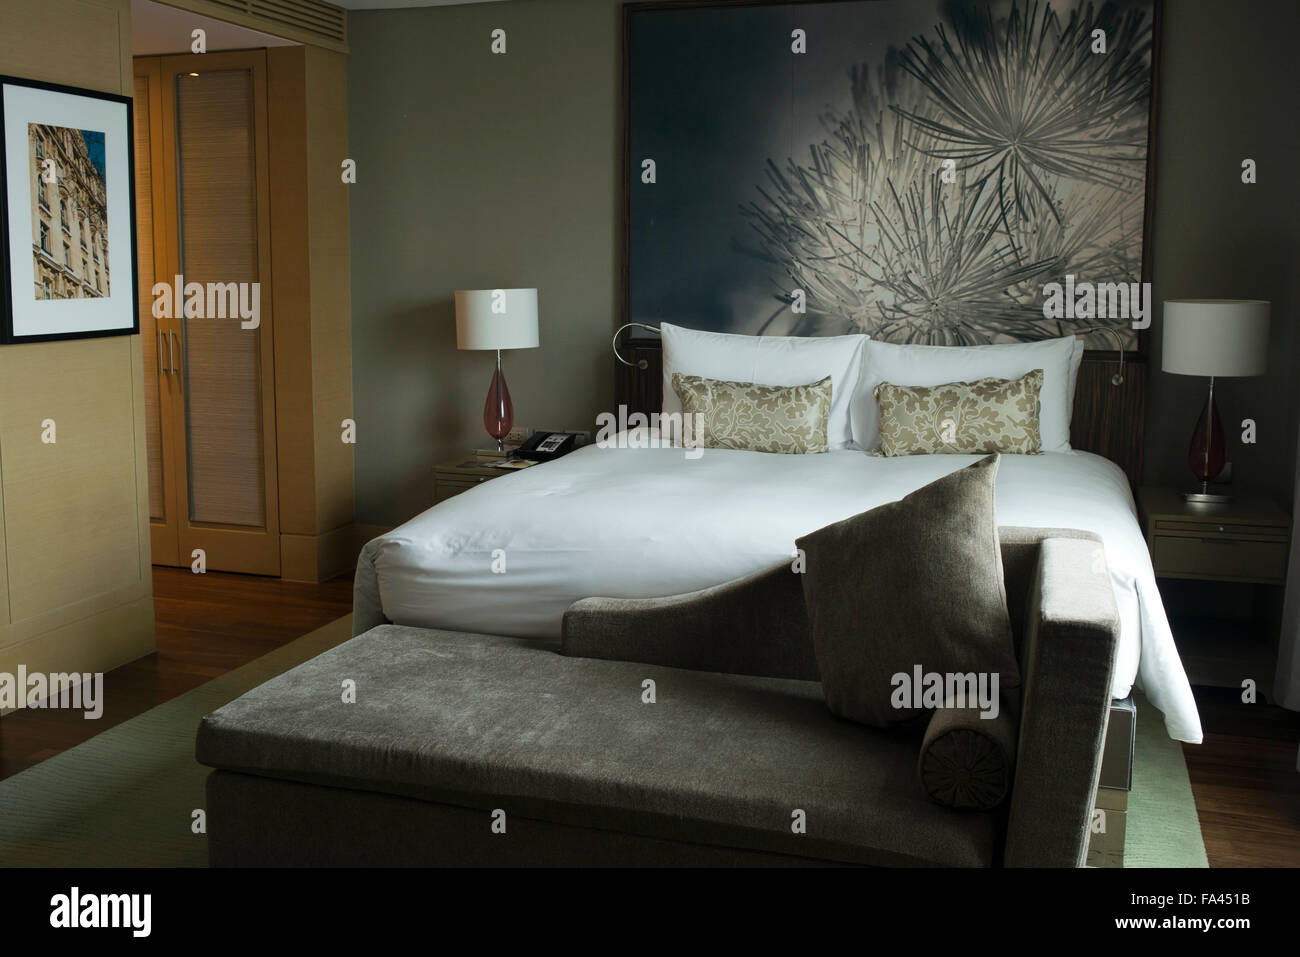 Bedroom in the luxurious Sofitel Hotel in the city of Bangkok in Thailand. Stock Photo